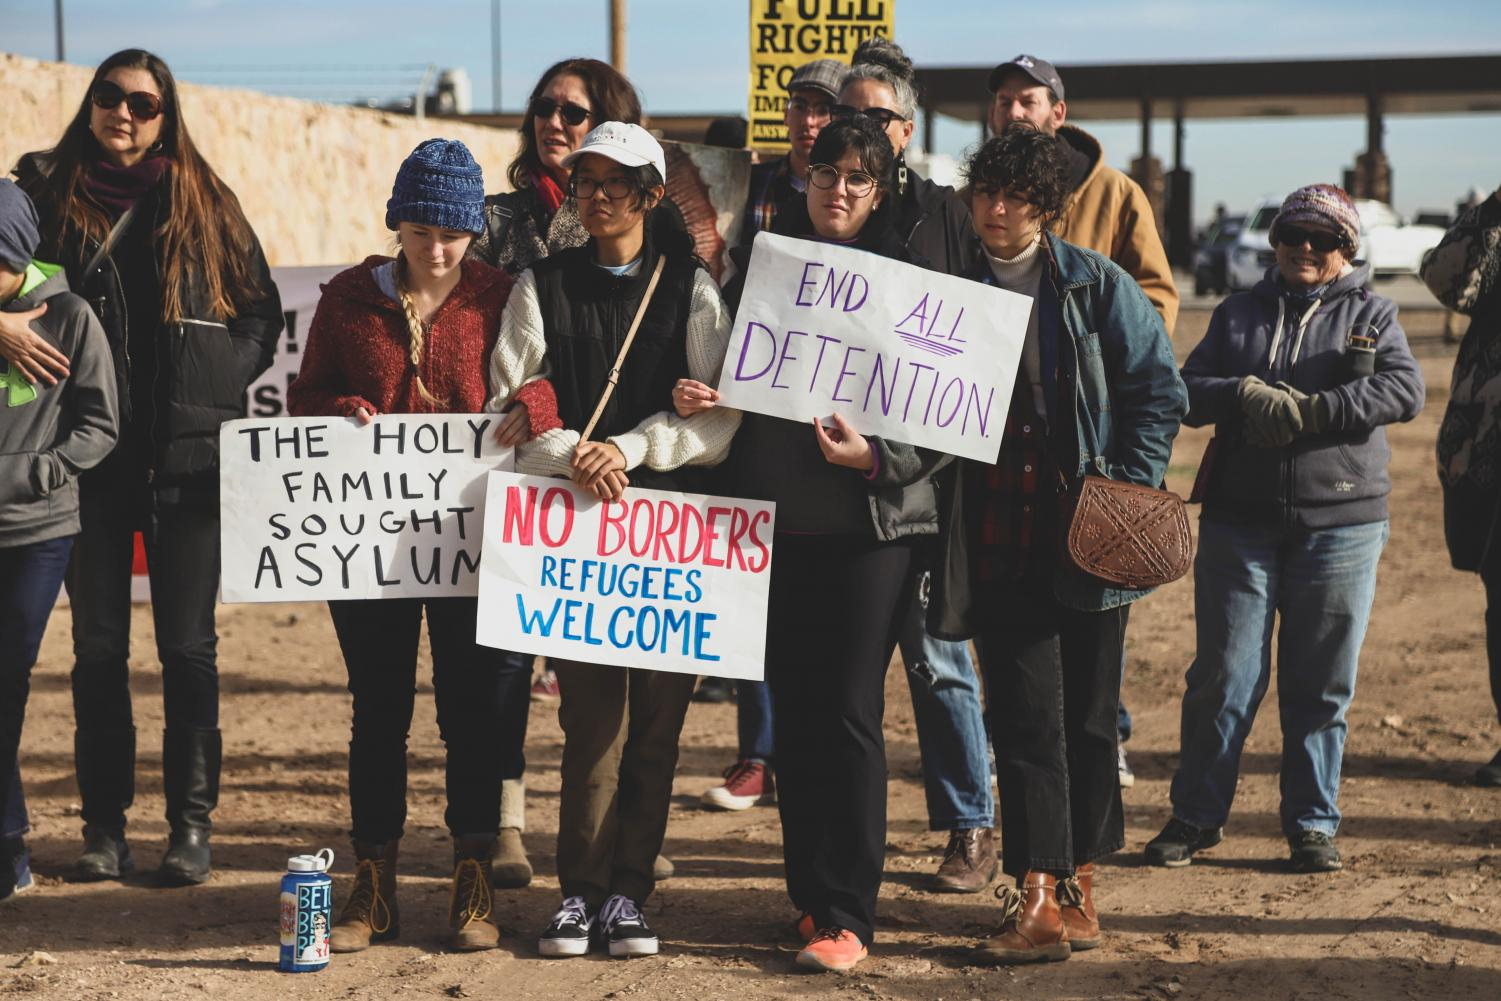 Demonstrators+hold+up+signs+to+protest+Tent+City+and+the+separation+of+families.